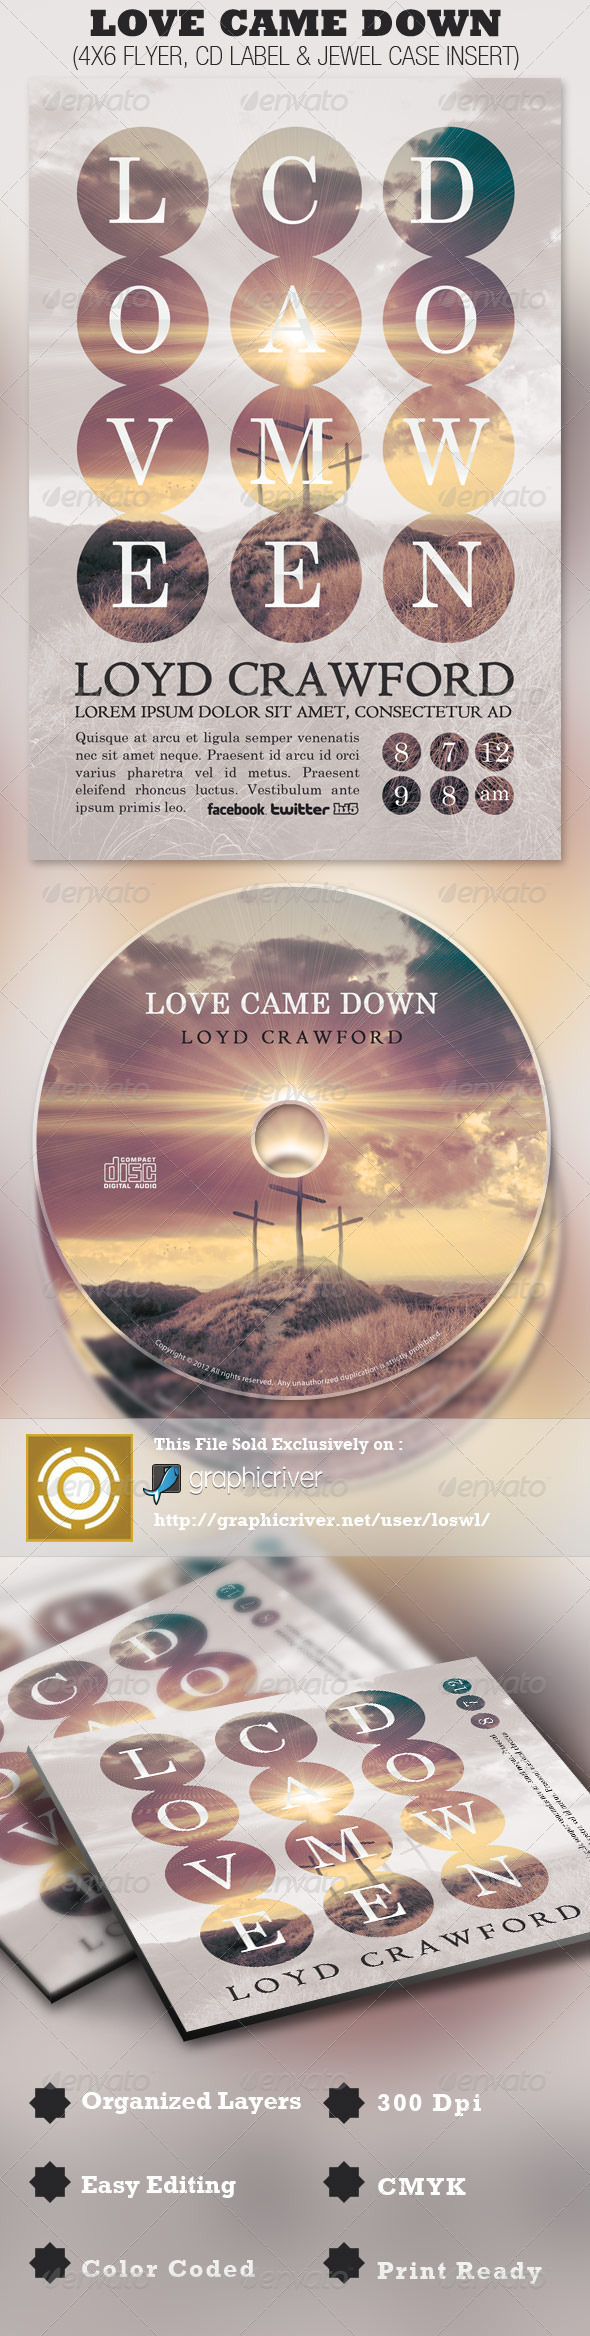 Love Came Down Church Flyer and CD Template - Church Flyers